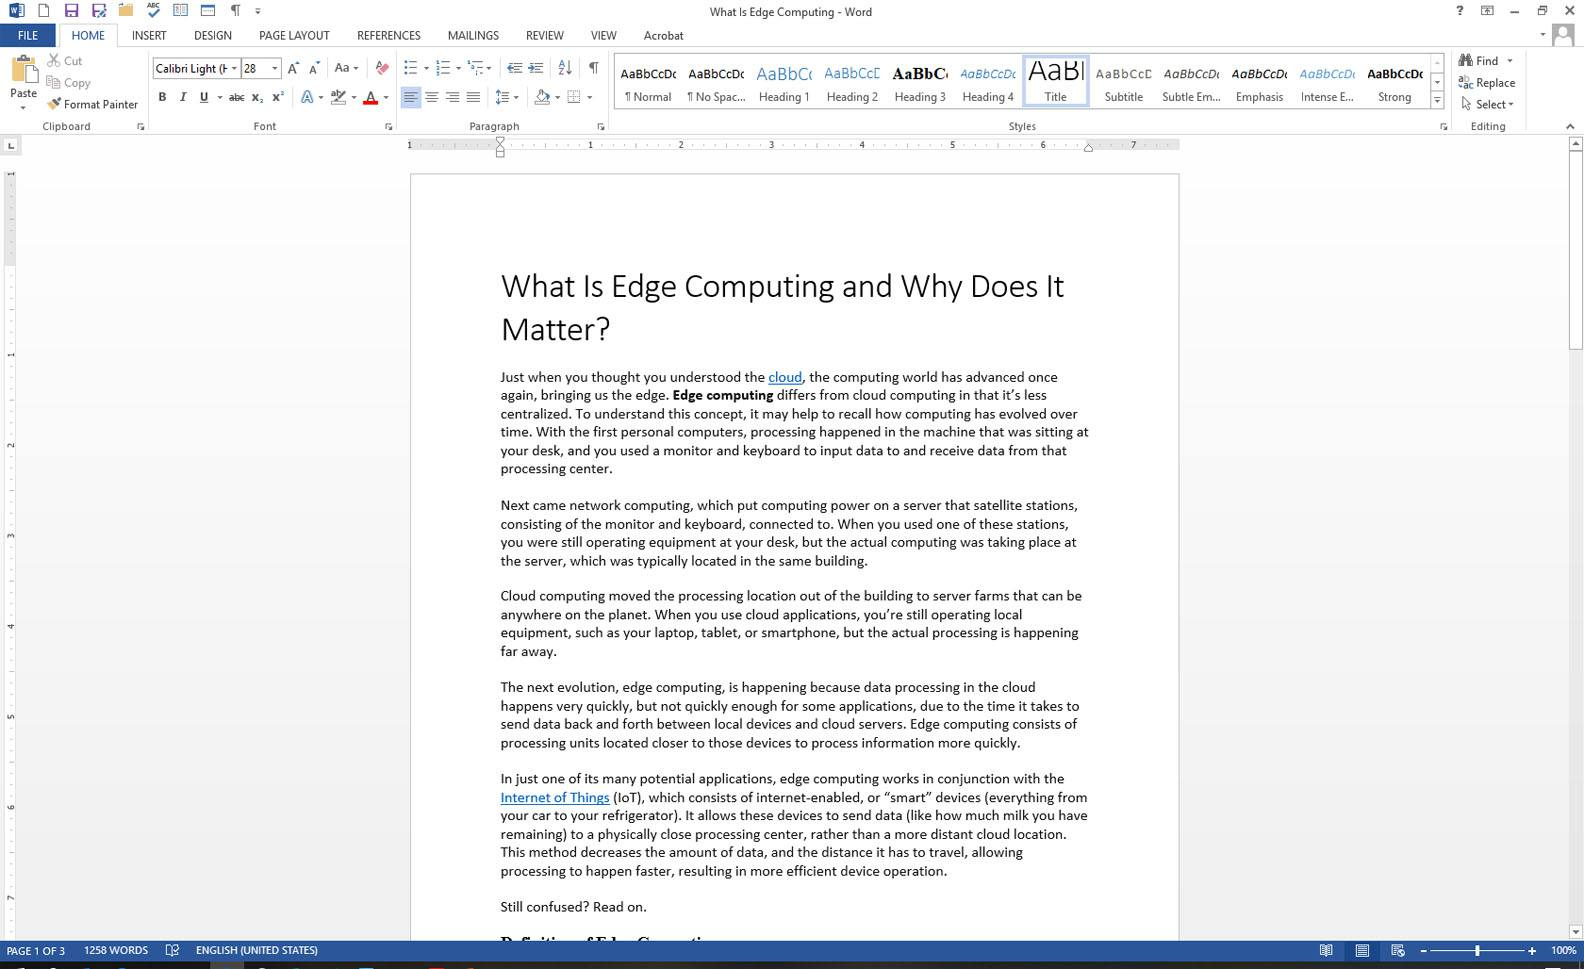 How to Search for Text in MS Word